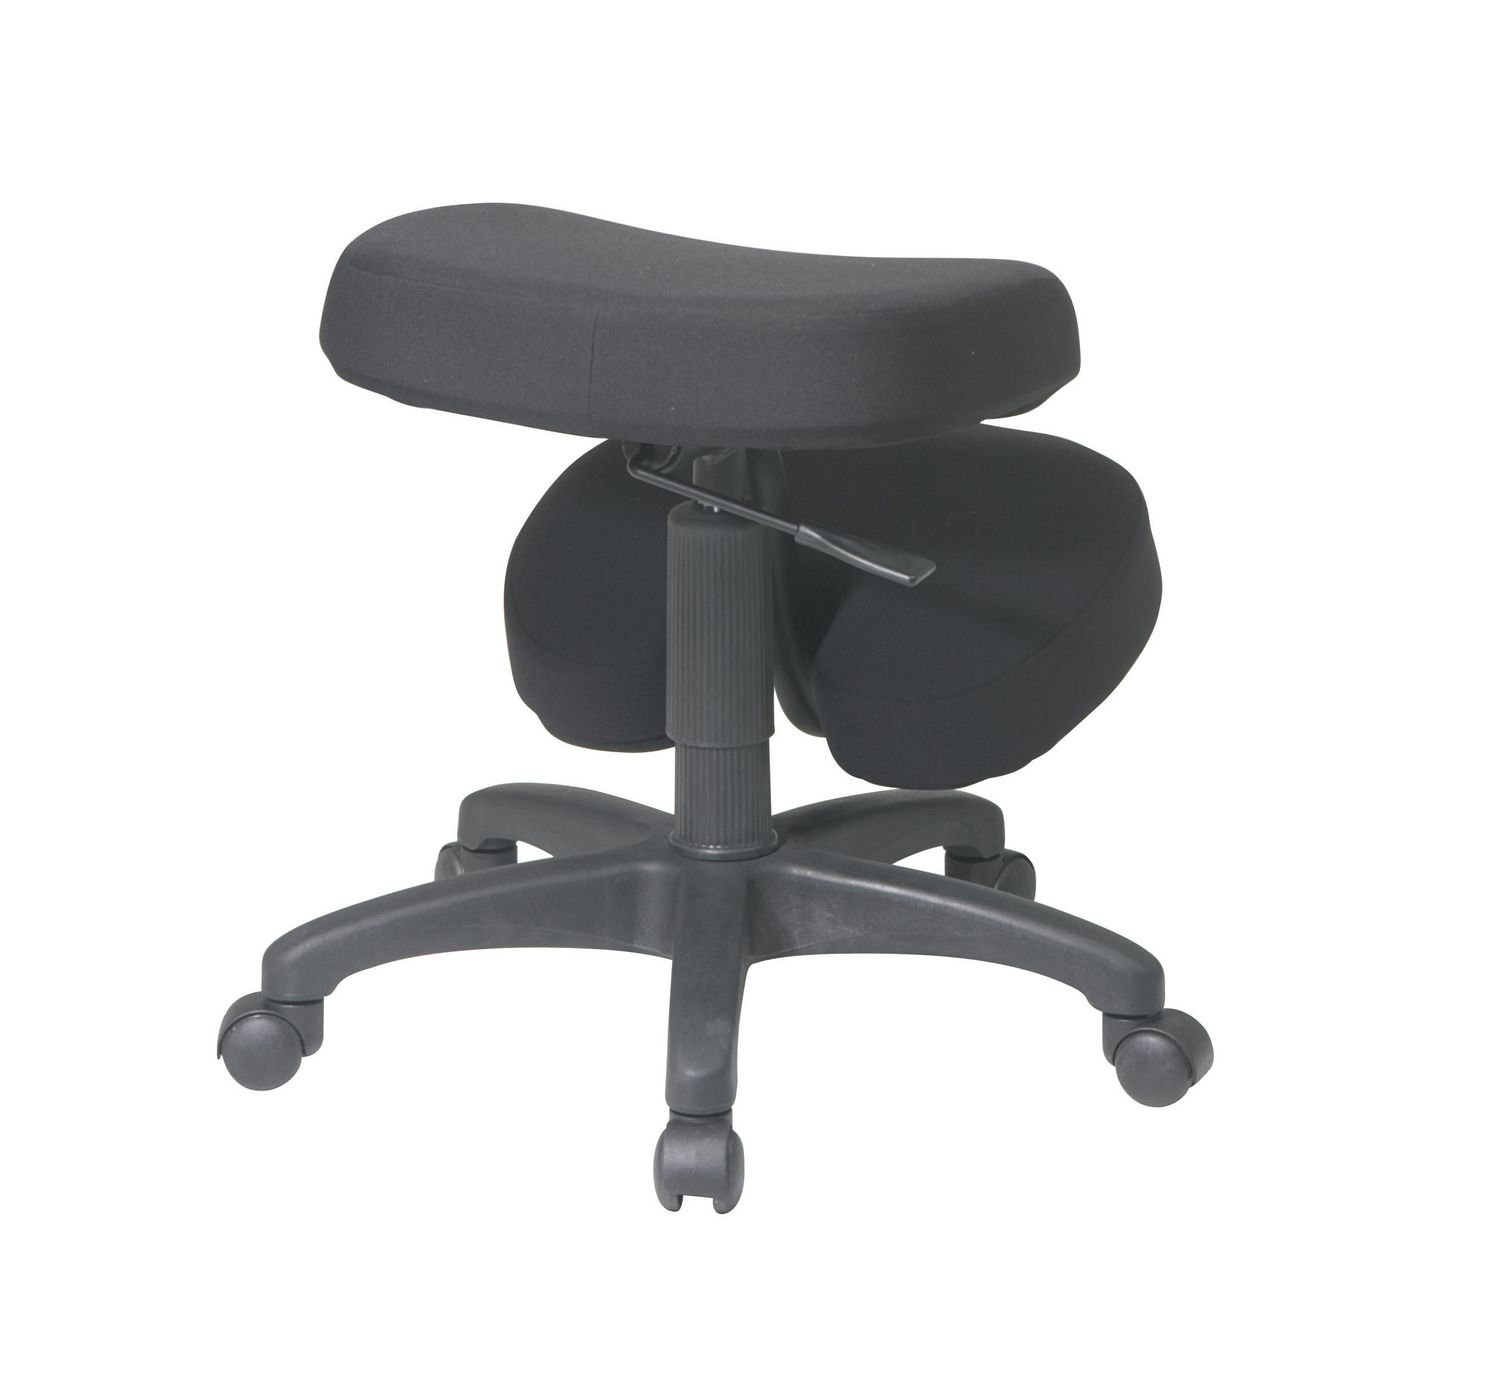 memory and smart chairs designed en knee office with ergonomically canada work base star ip walmart foam chair